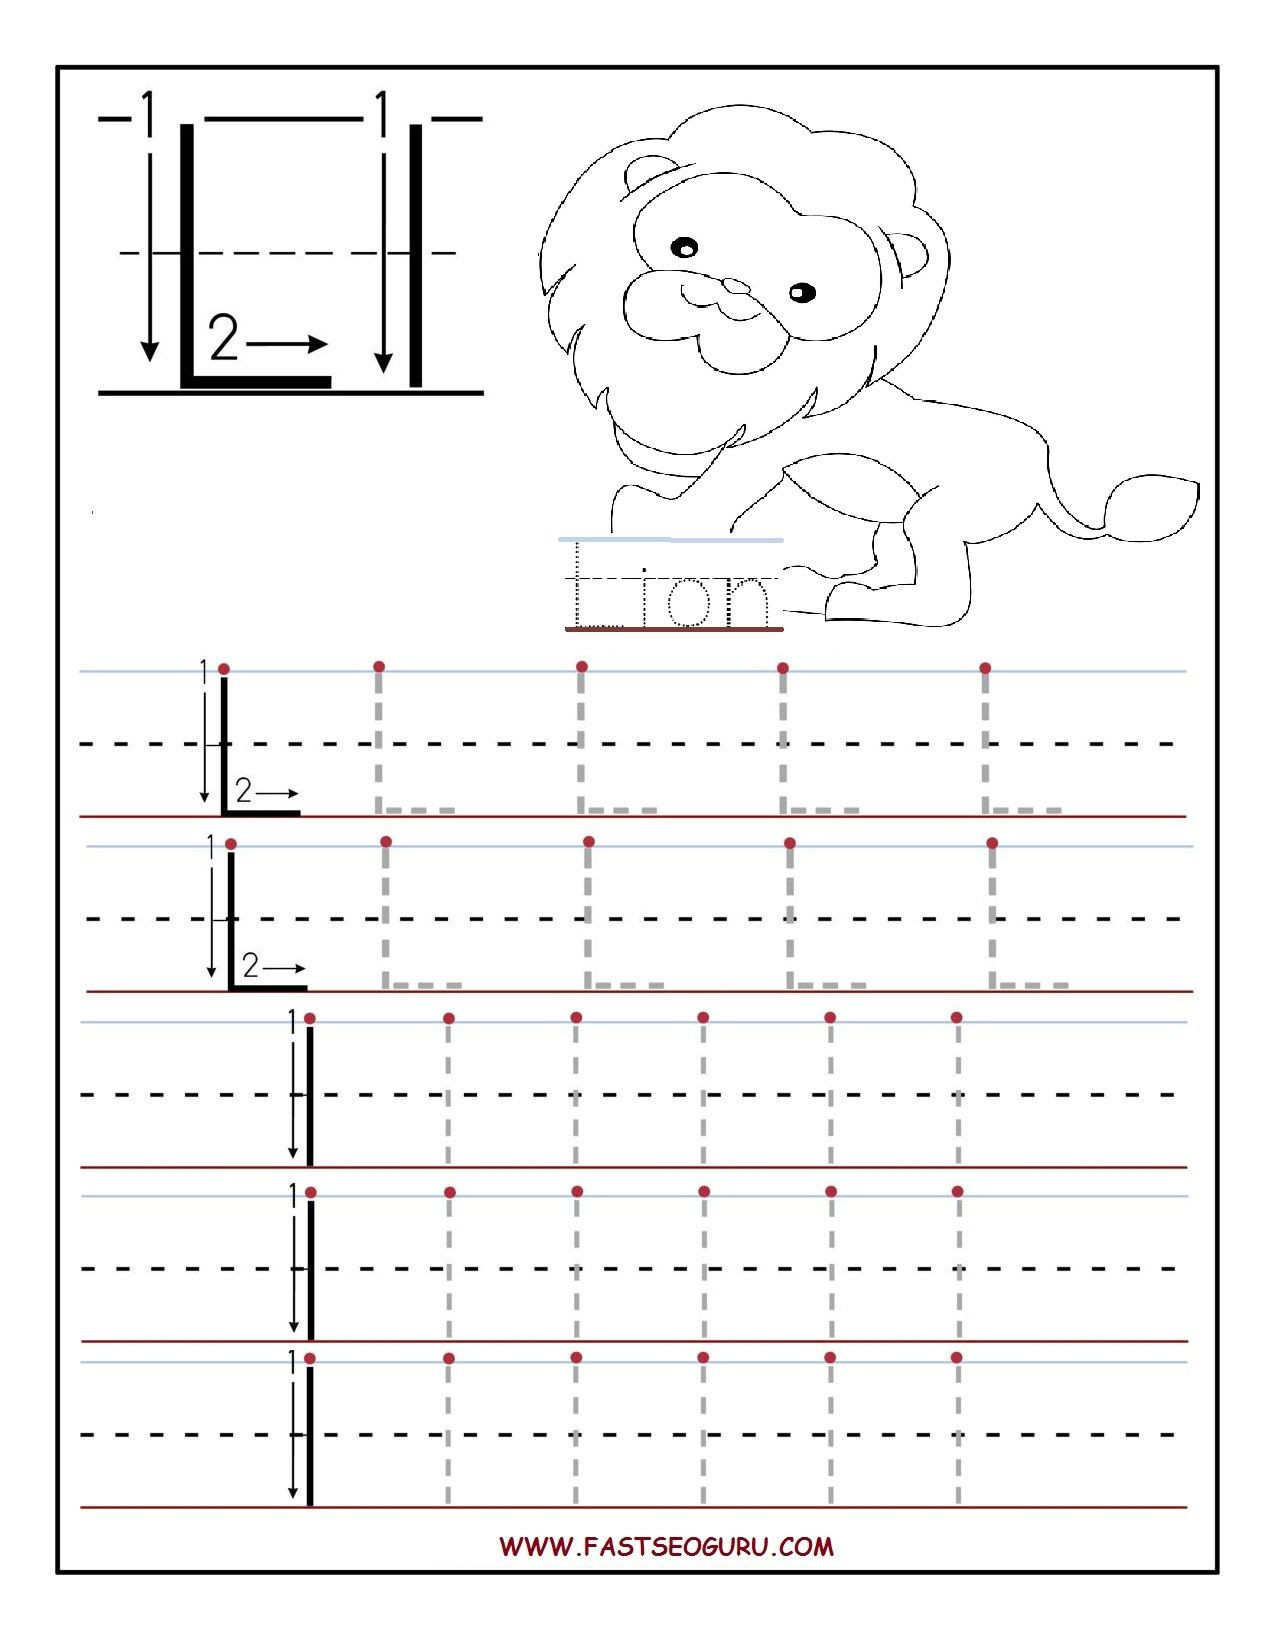 Letter L Worksheets for Preschool Printable Letter L Tracing Worksheets for Preschool